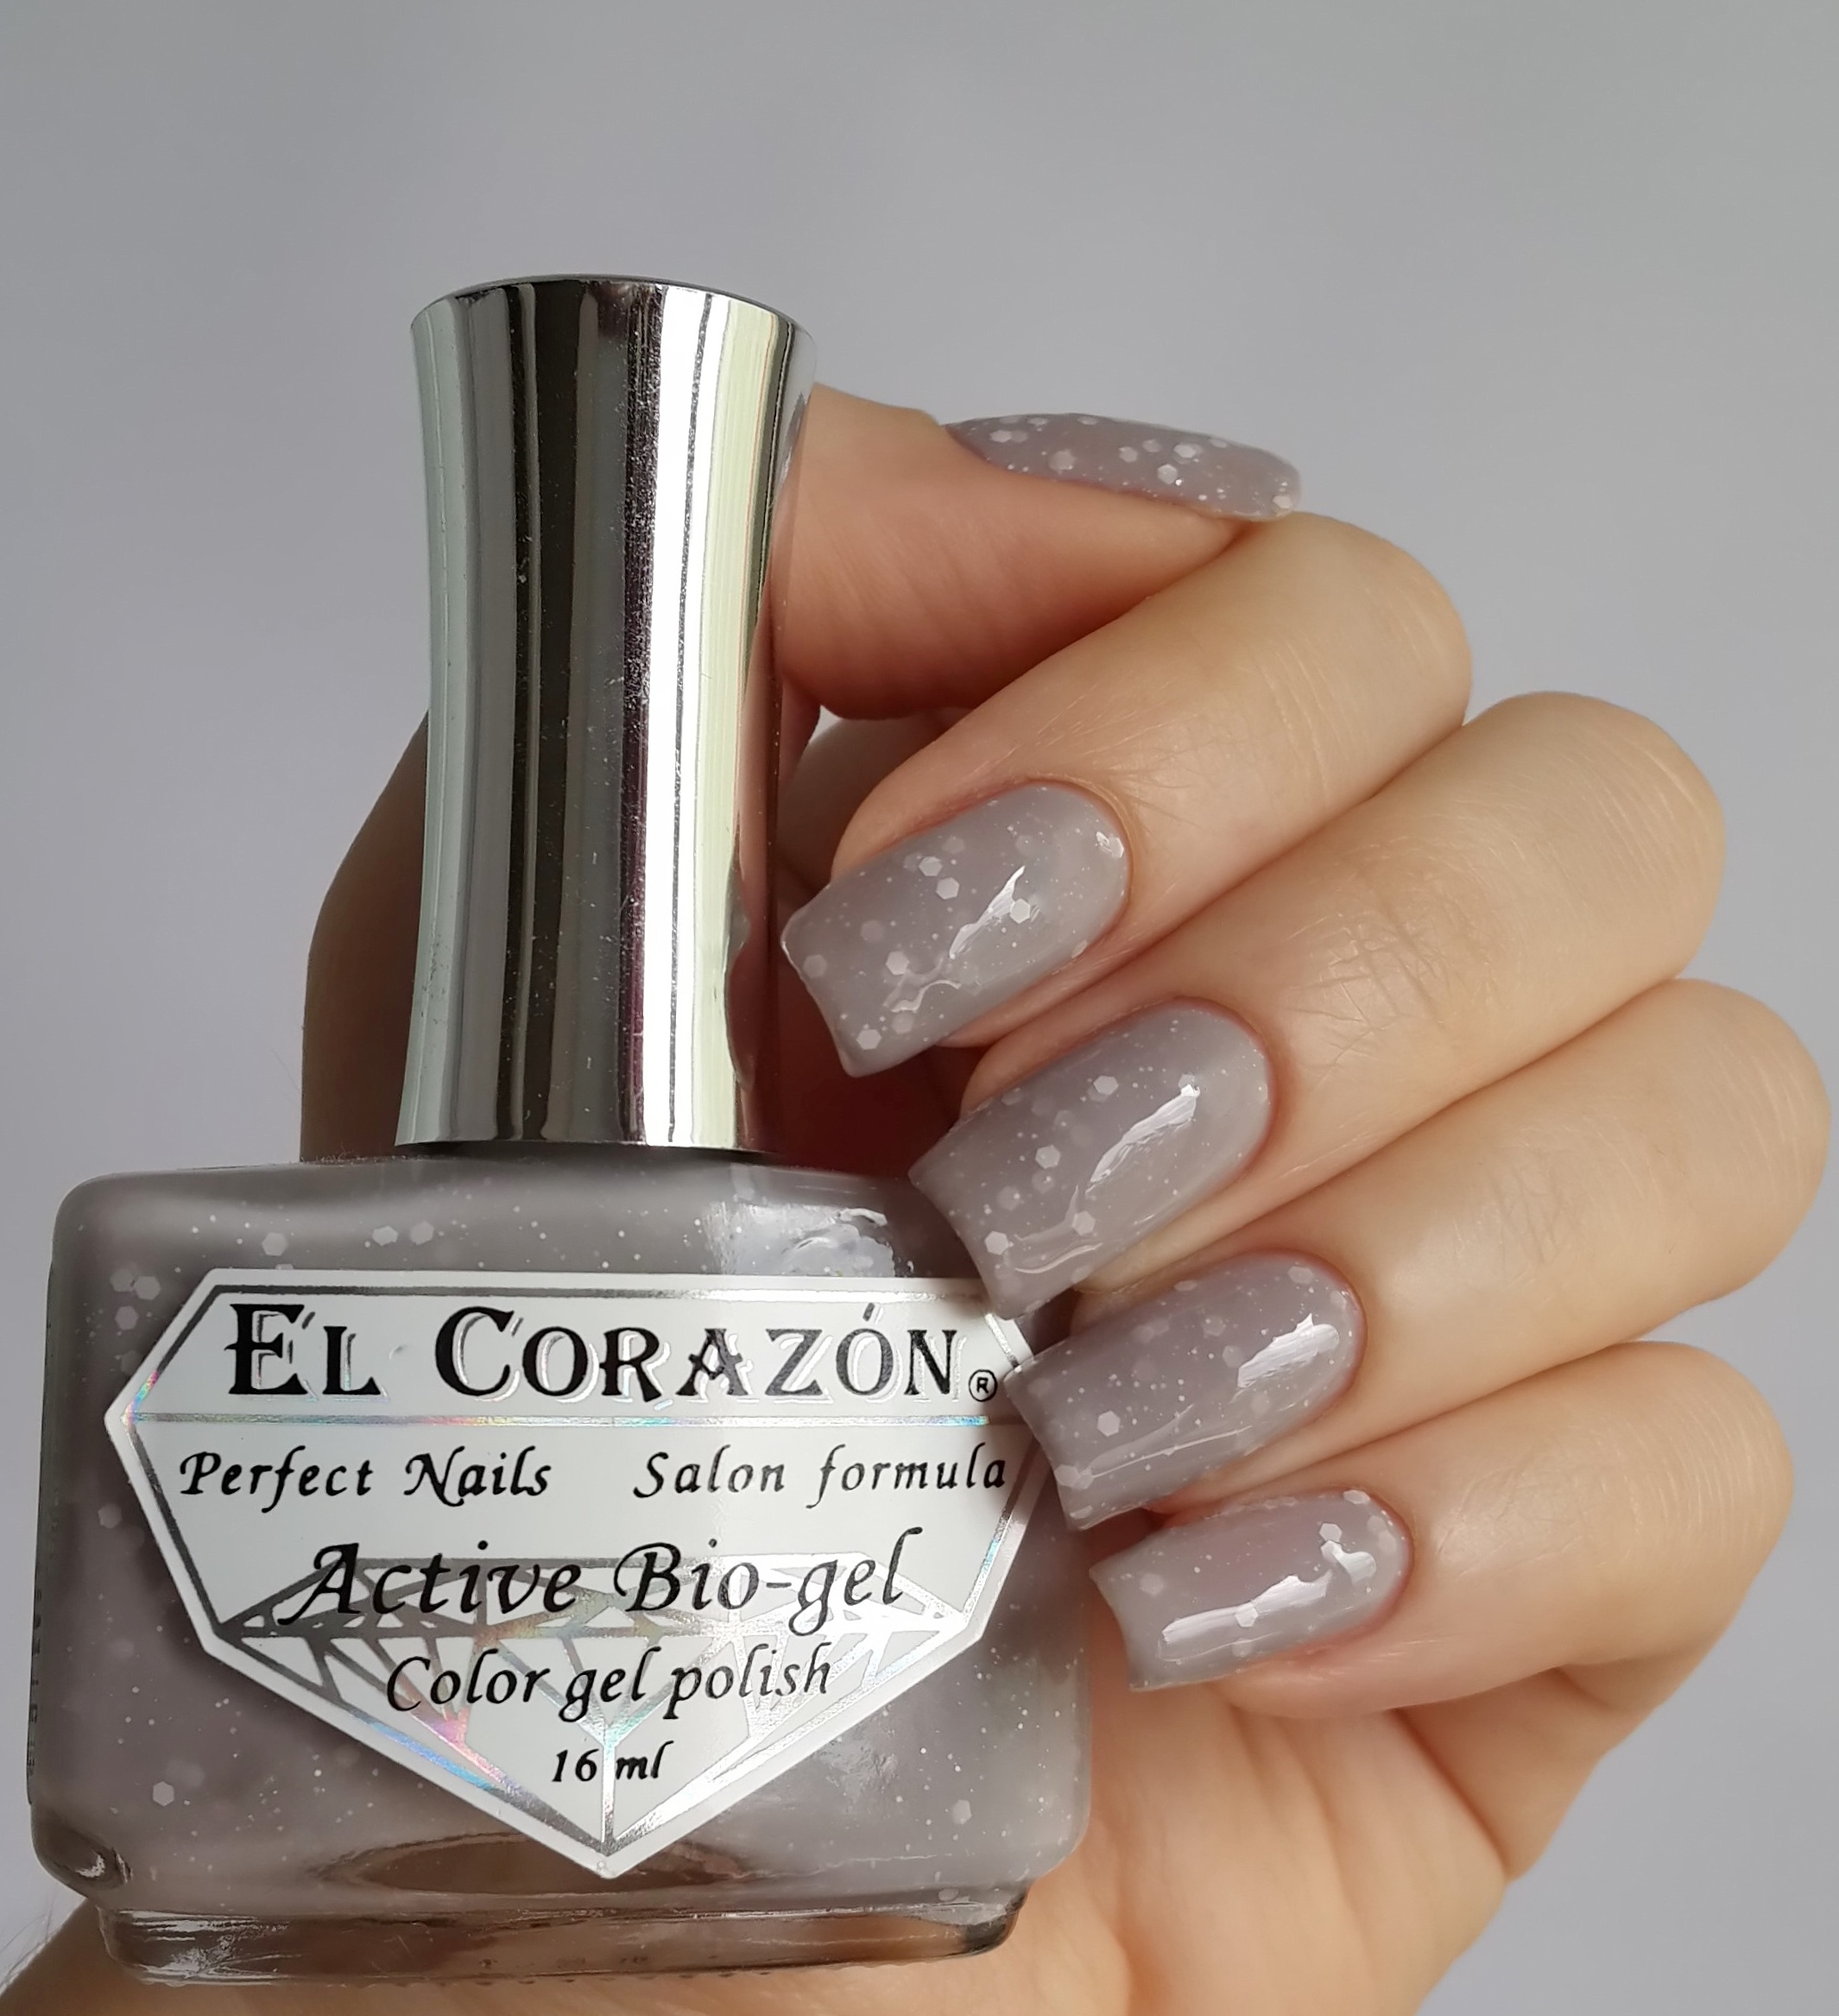 EL Corazon Active Bio-gel Color gel polish Fashion girl on a fitness №423/214